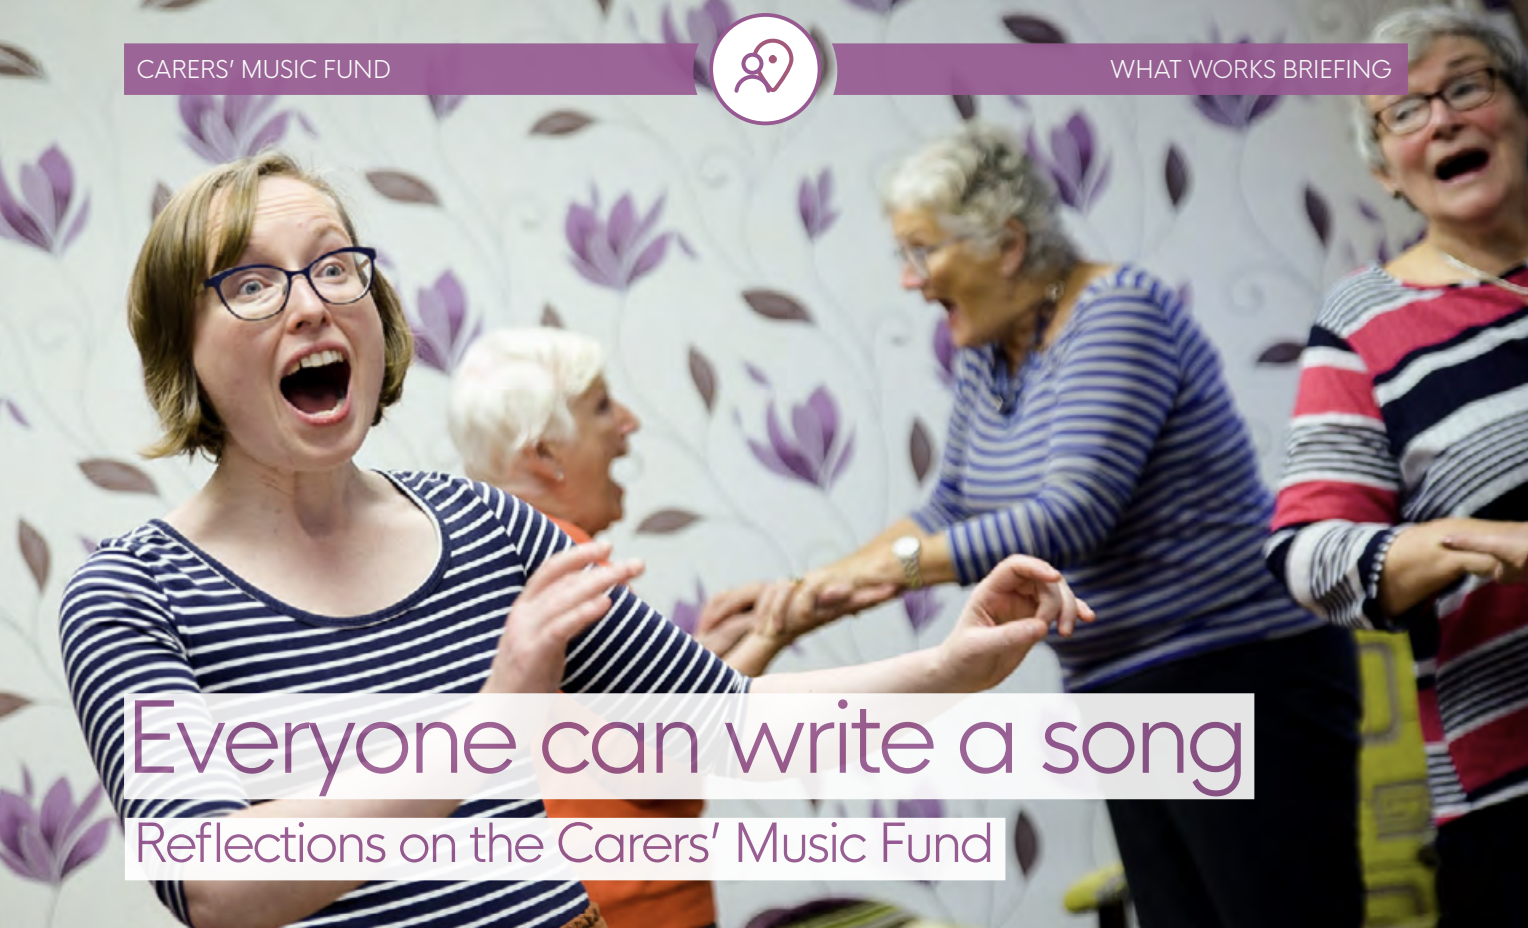 Everyone can write a song: reflections on the Carers' Music Fund